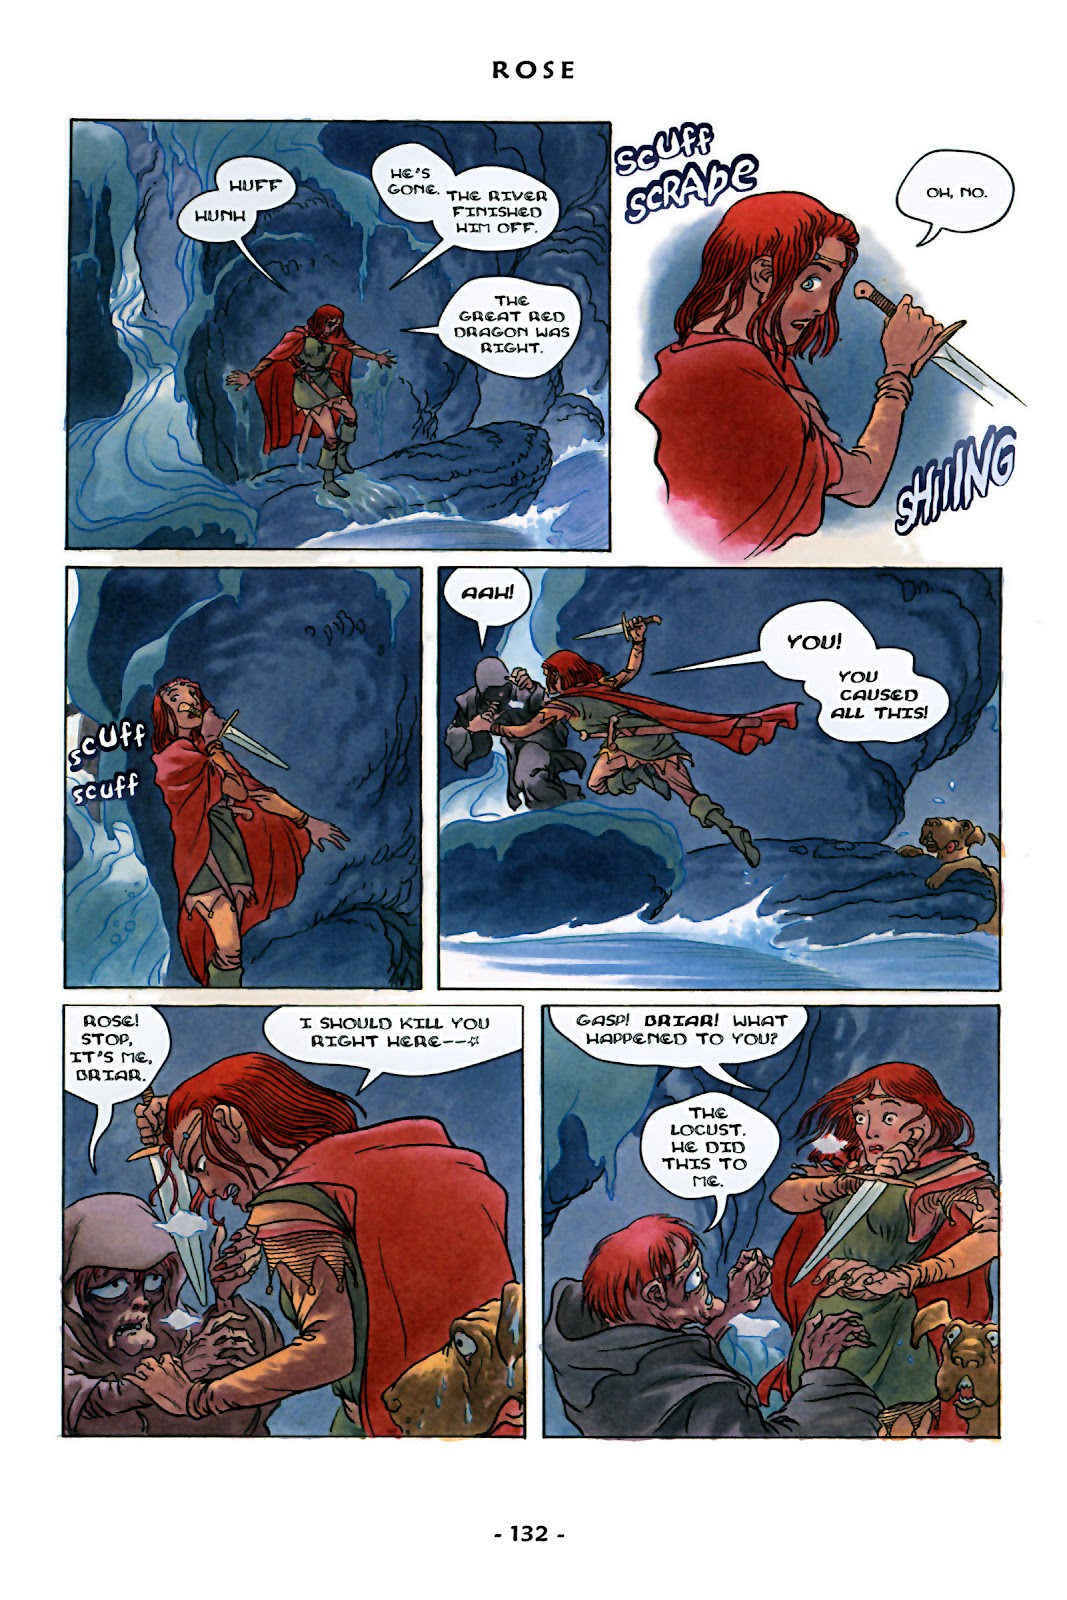 Read online Rose (2000) comic -  Issue # TPB - 137